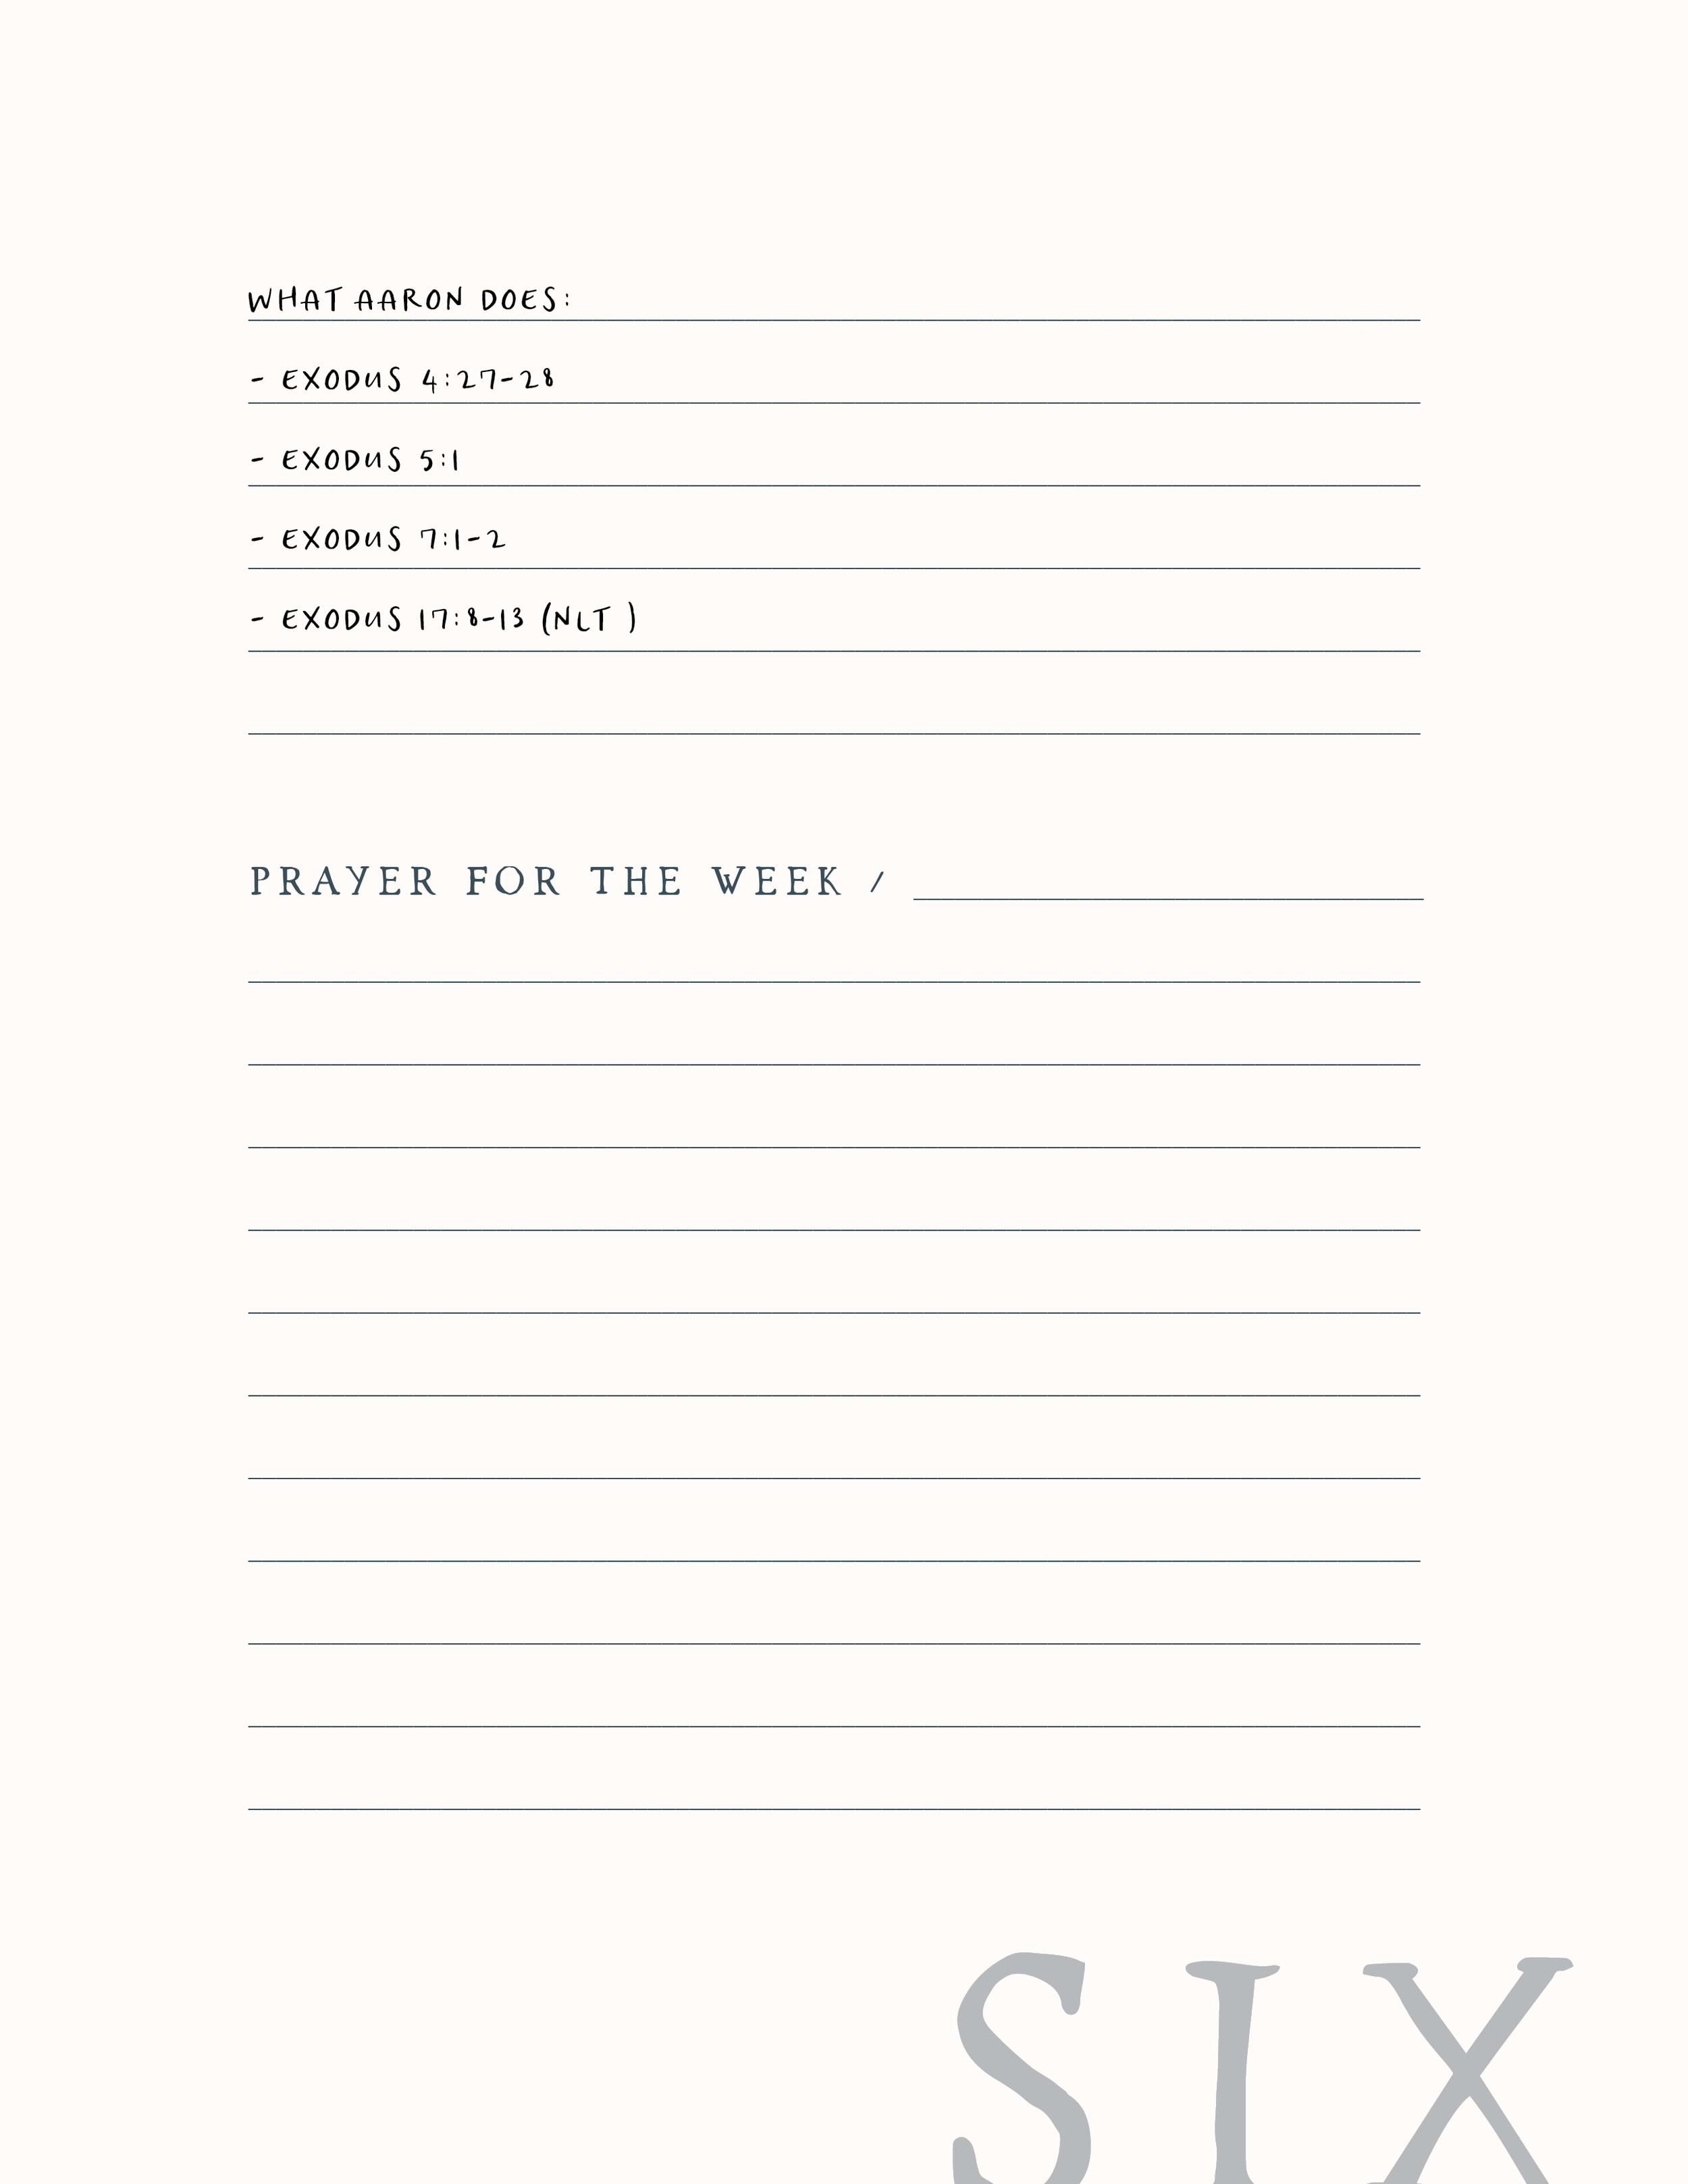 weeksix_notes2.png